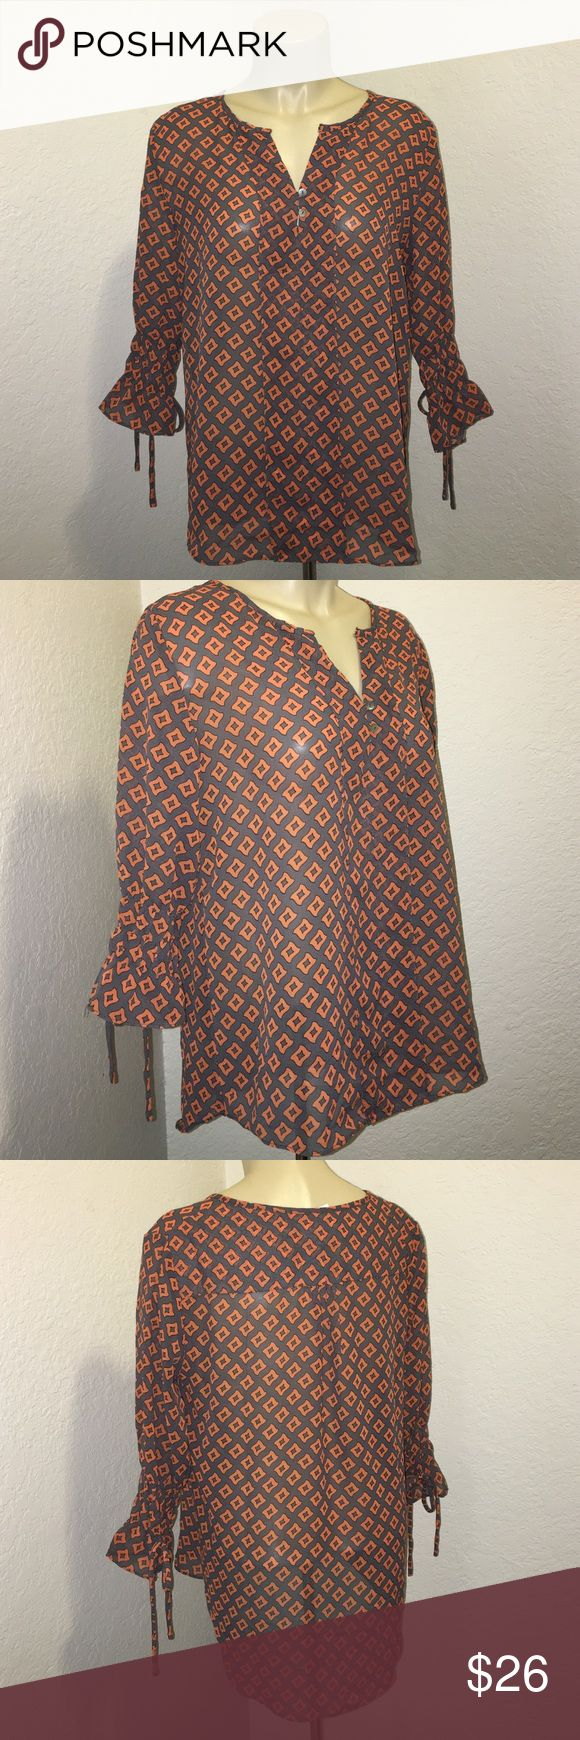 🆕 🍂 Orange & Grey Geometric Sheer Blouse Top 3/4 sleeve sheer blouse by Umgee. Size meaning. In excellent condition. Brand new with tags. Orange and grey geometric print. chic and stylish. Umgee Tops Blouses